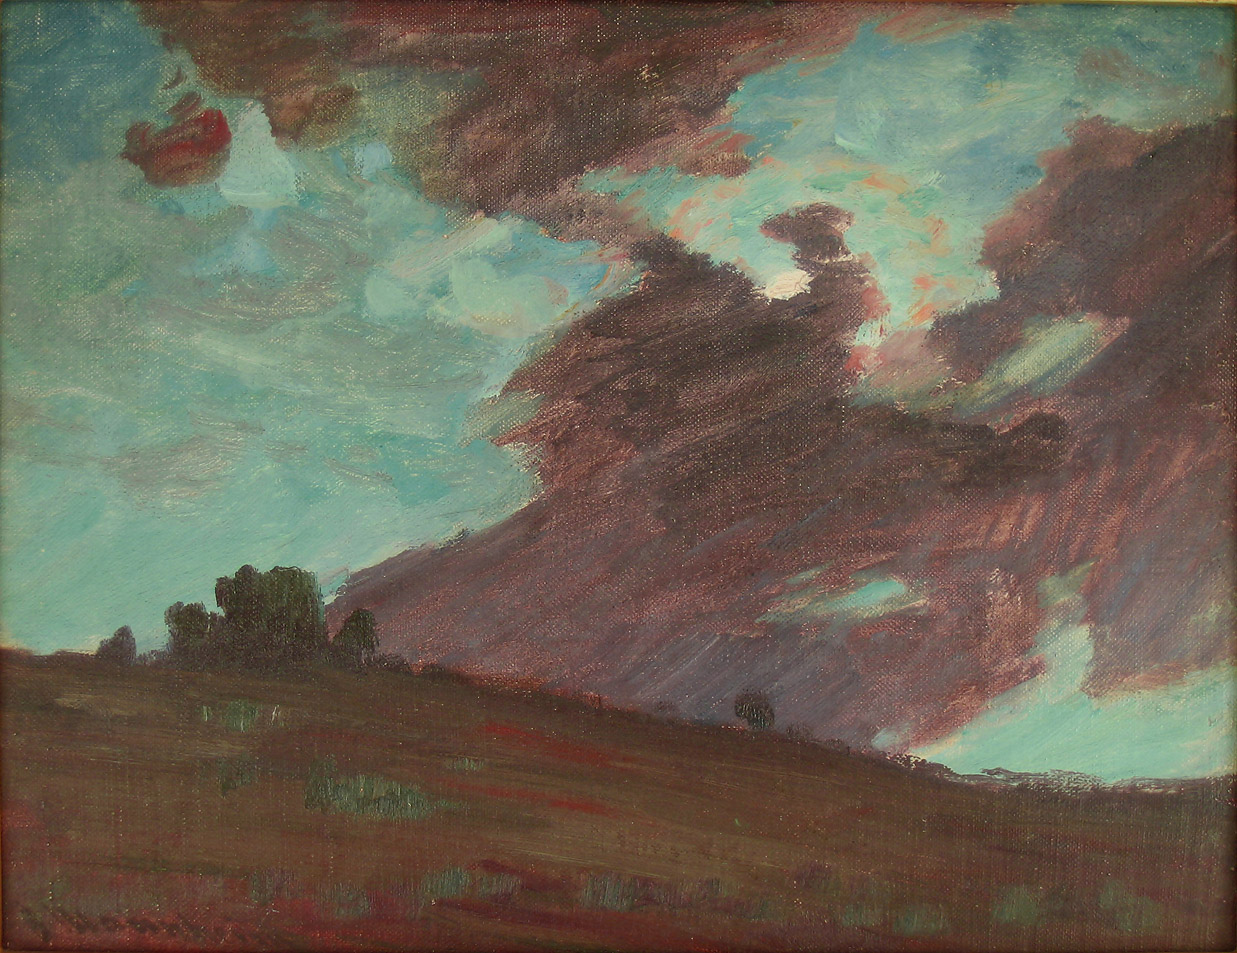 Jean Mannheim, California, Storm Clouds, Oil on Canvas